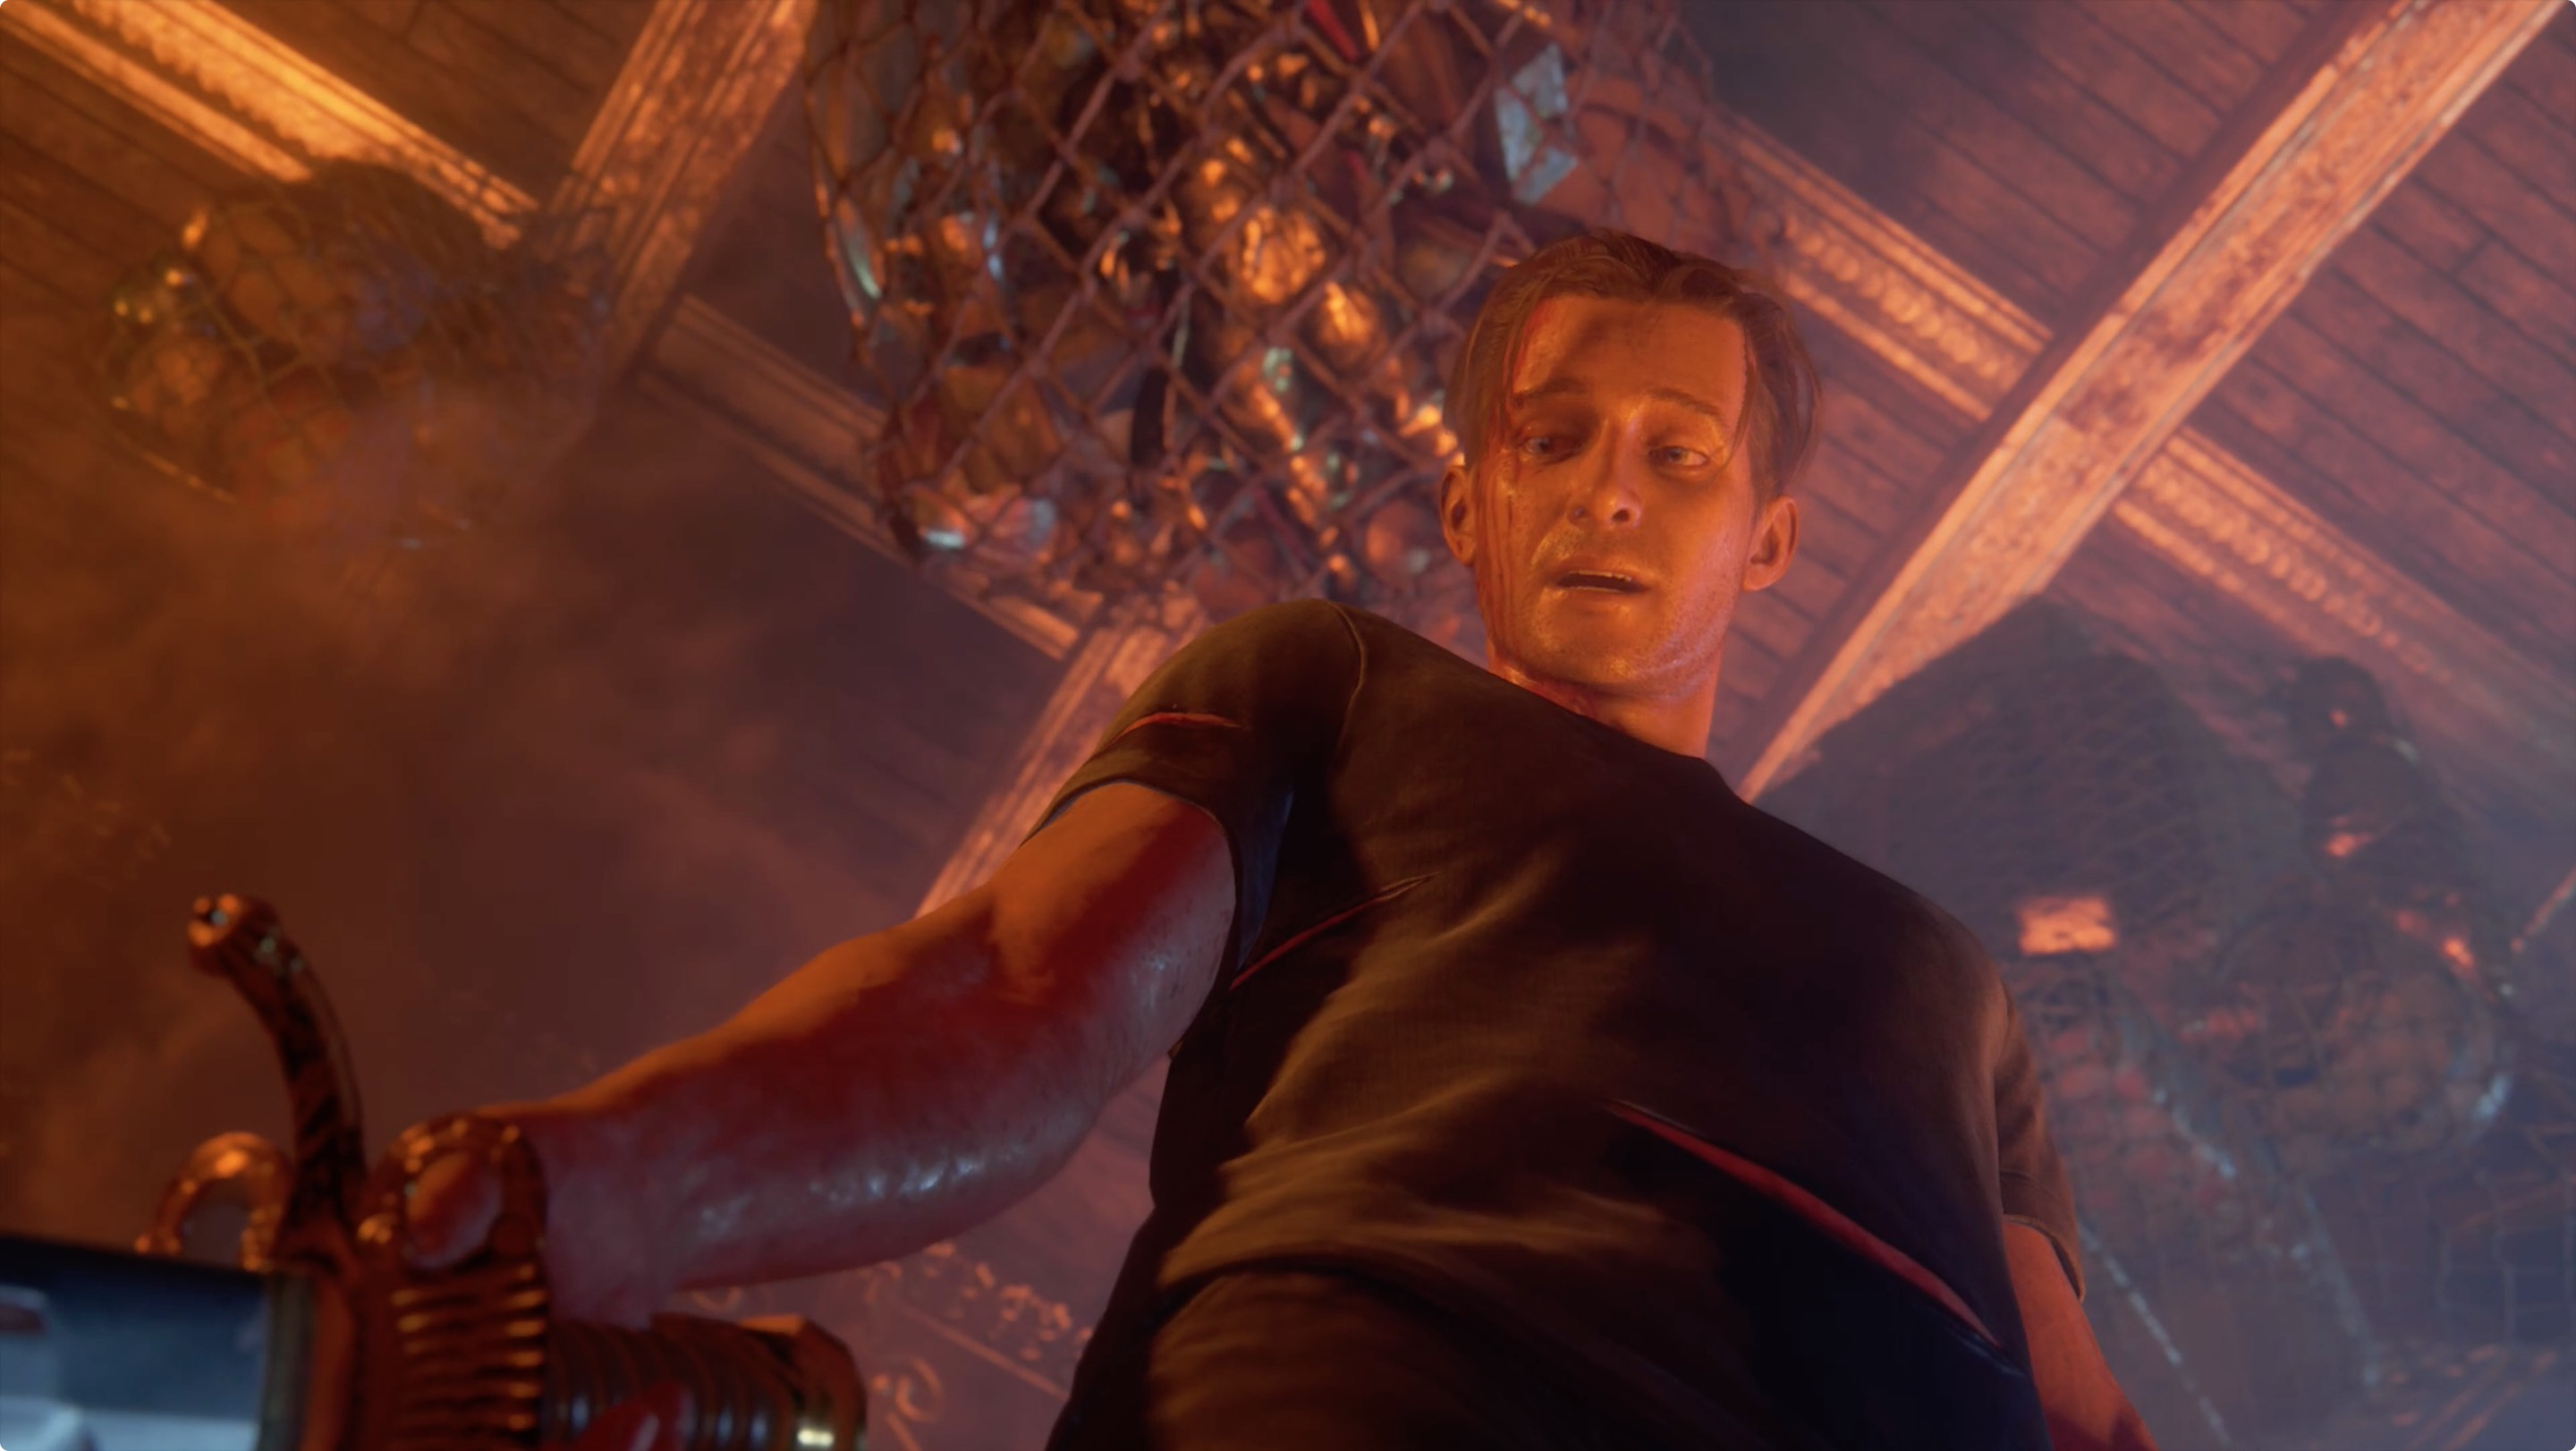 Uncharted 4: A Thief's End 'A Thief's End' treasures and collectibles locations guide